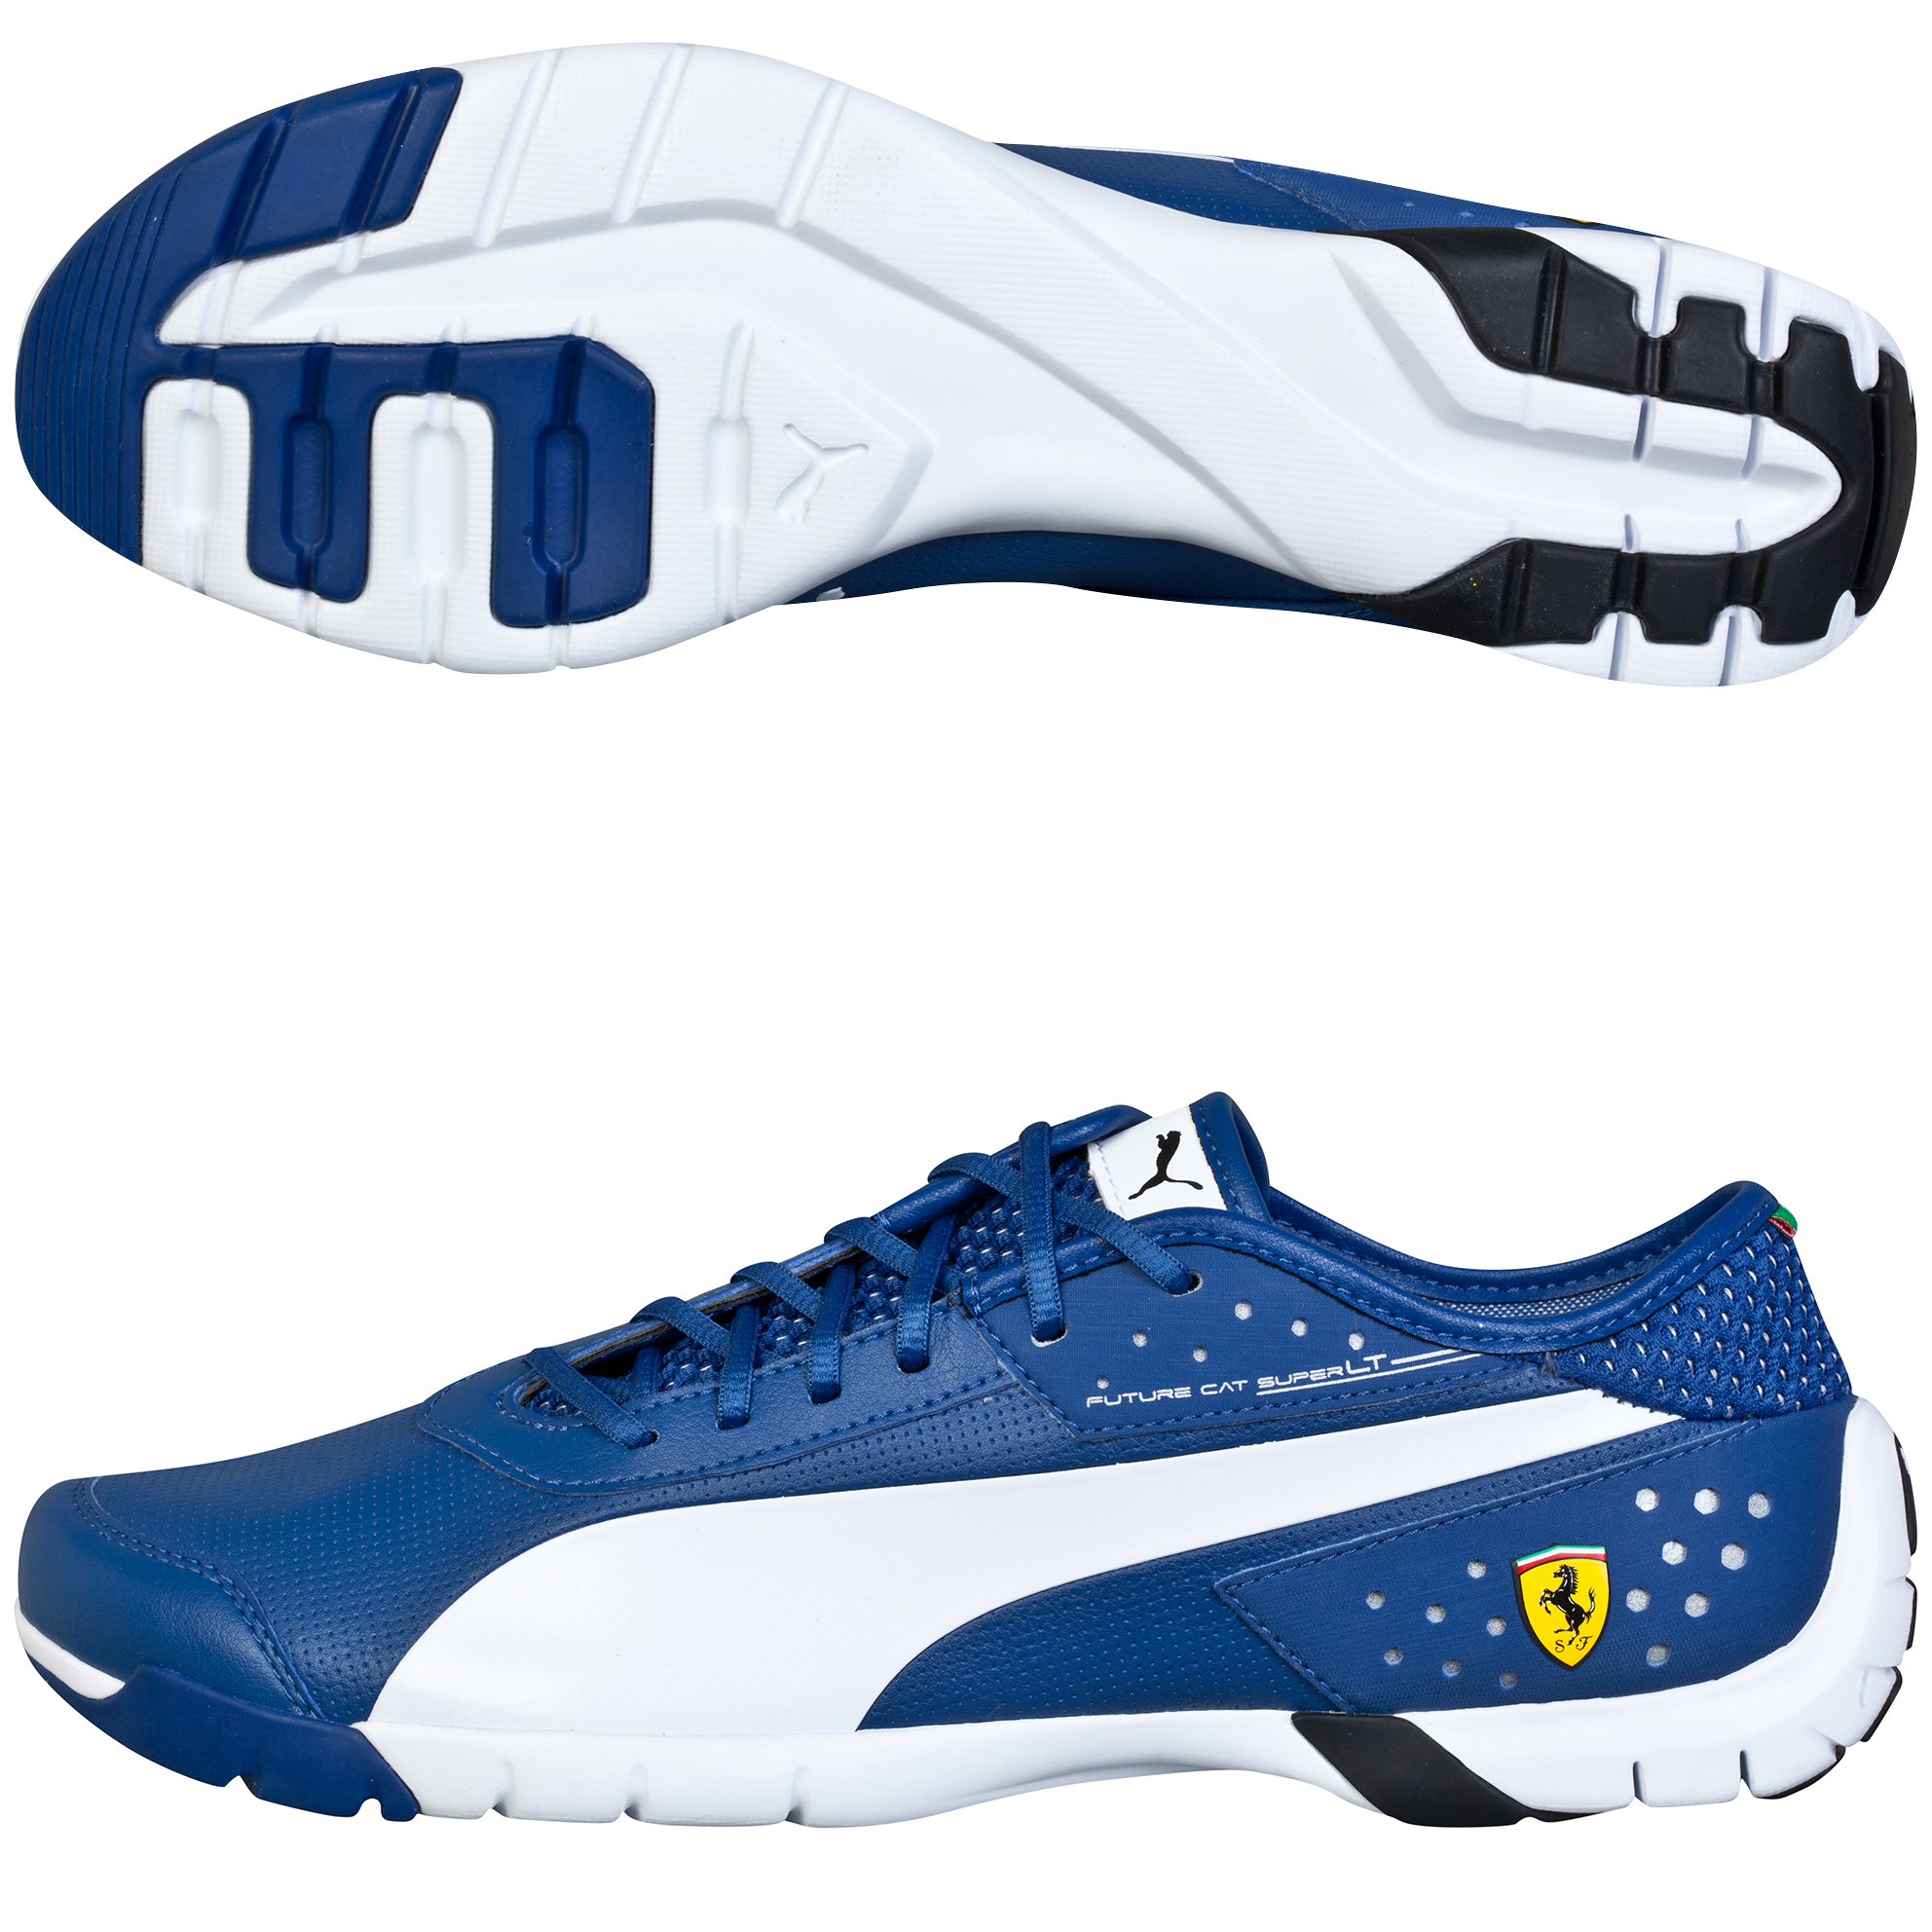 Scuderia Ferrari Future Cat SL Blue